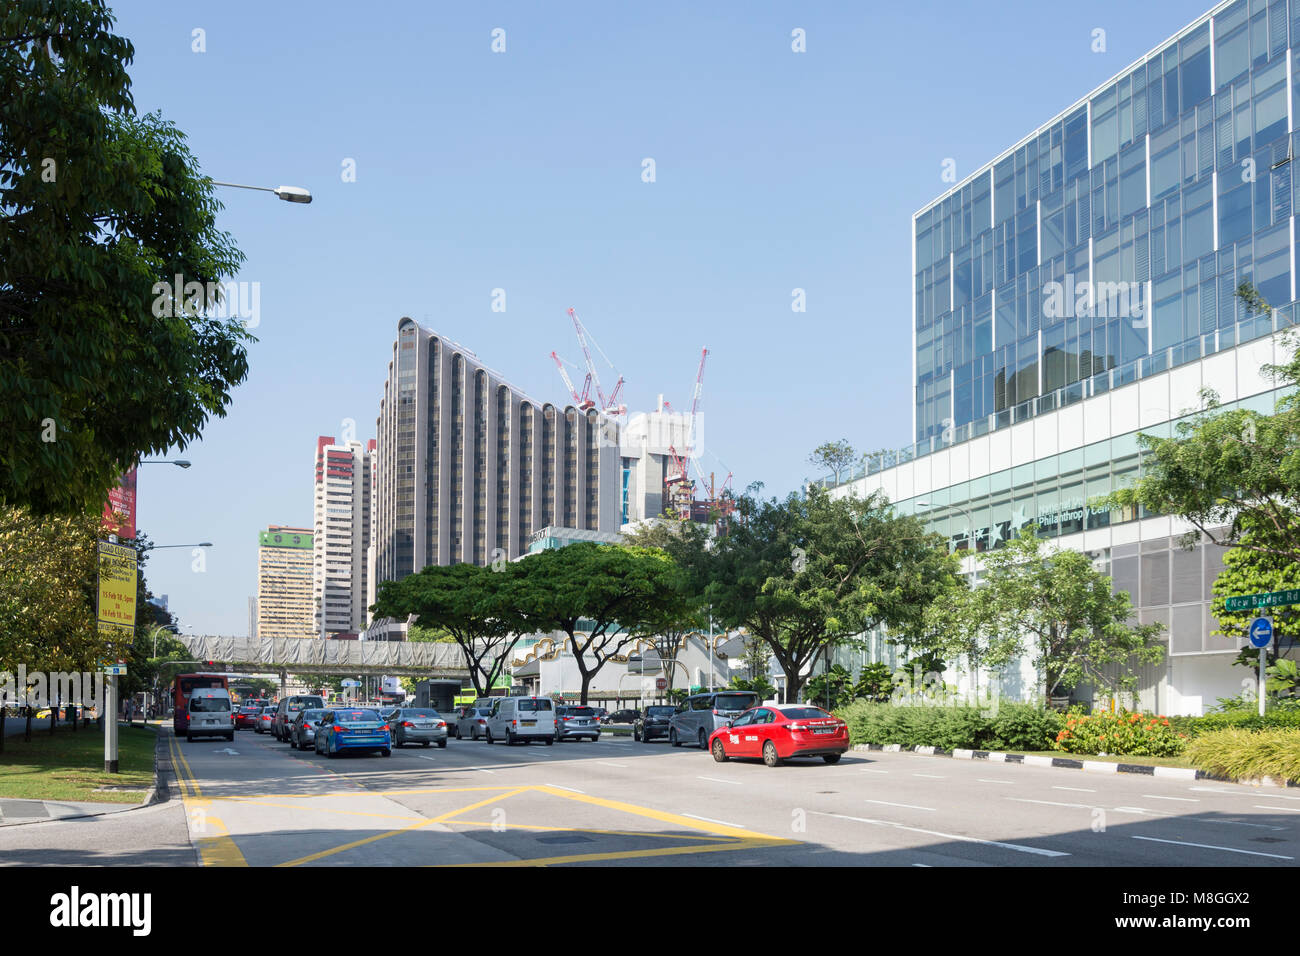 Eu Tong Sen Street, Chinatown, Outram District, Central Area, Singapore Island (Pulau Ujong), Singapore - Stock Image